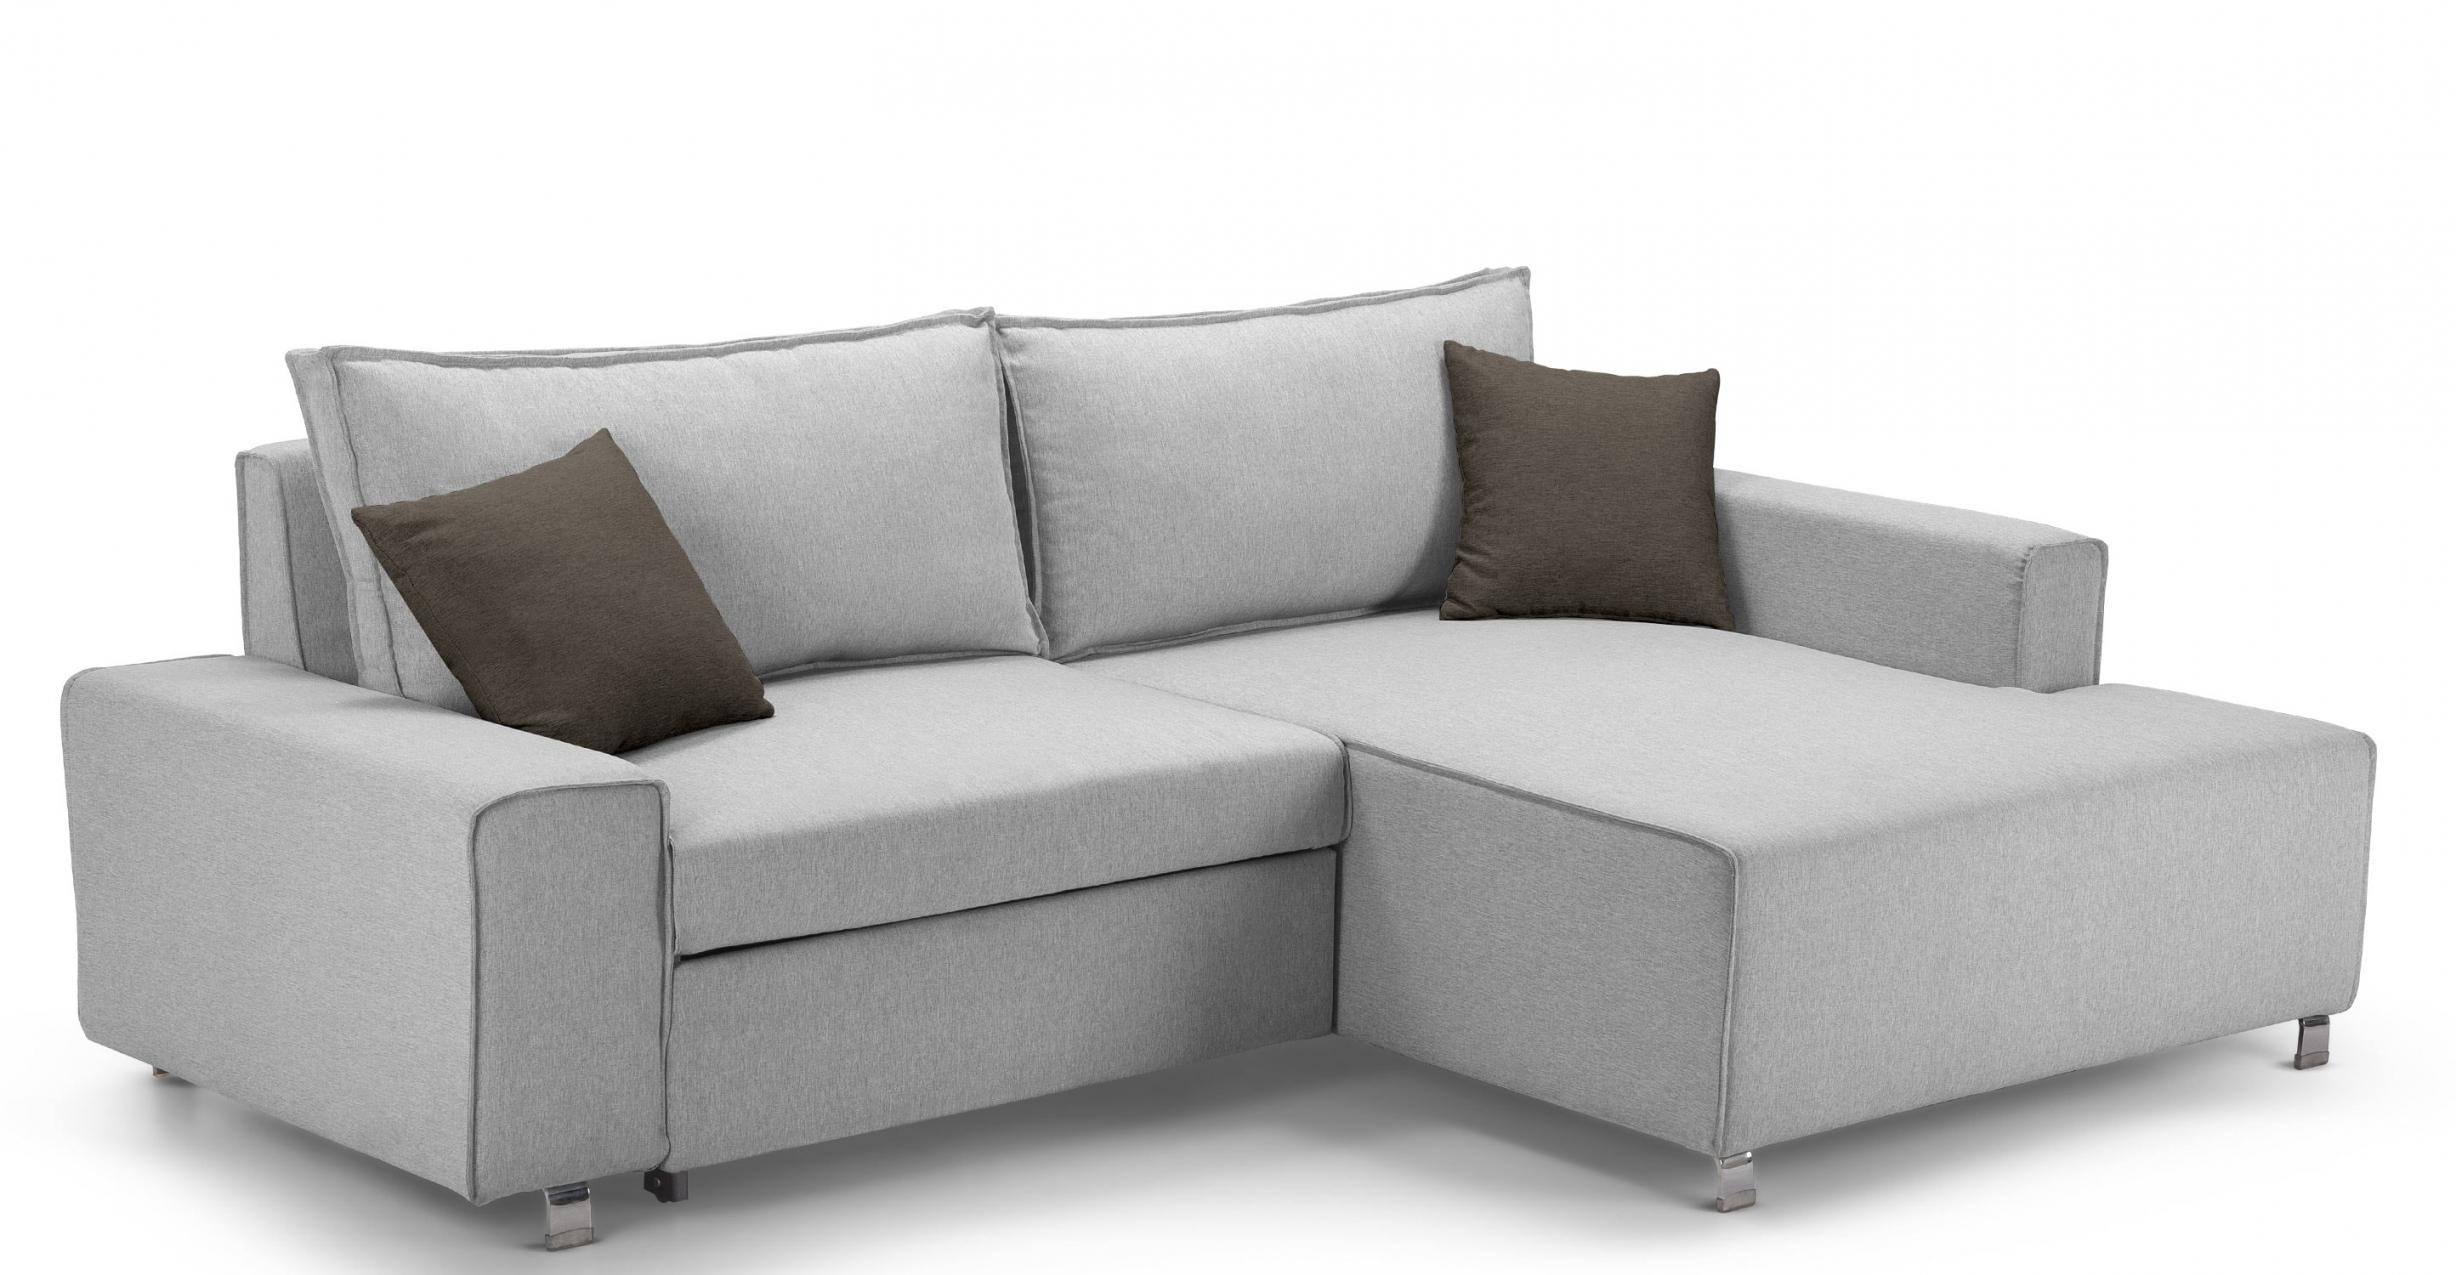 Lovely Corner Sofa Beds For Sale – Merciarescue With Regard To Corner Sofa Bed Sale (View 16 of 20)